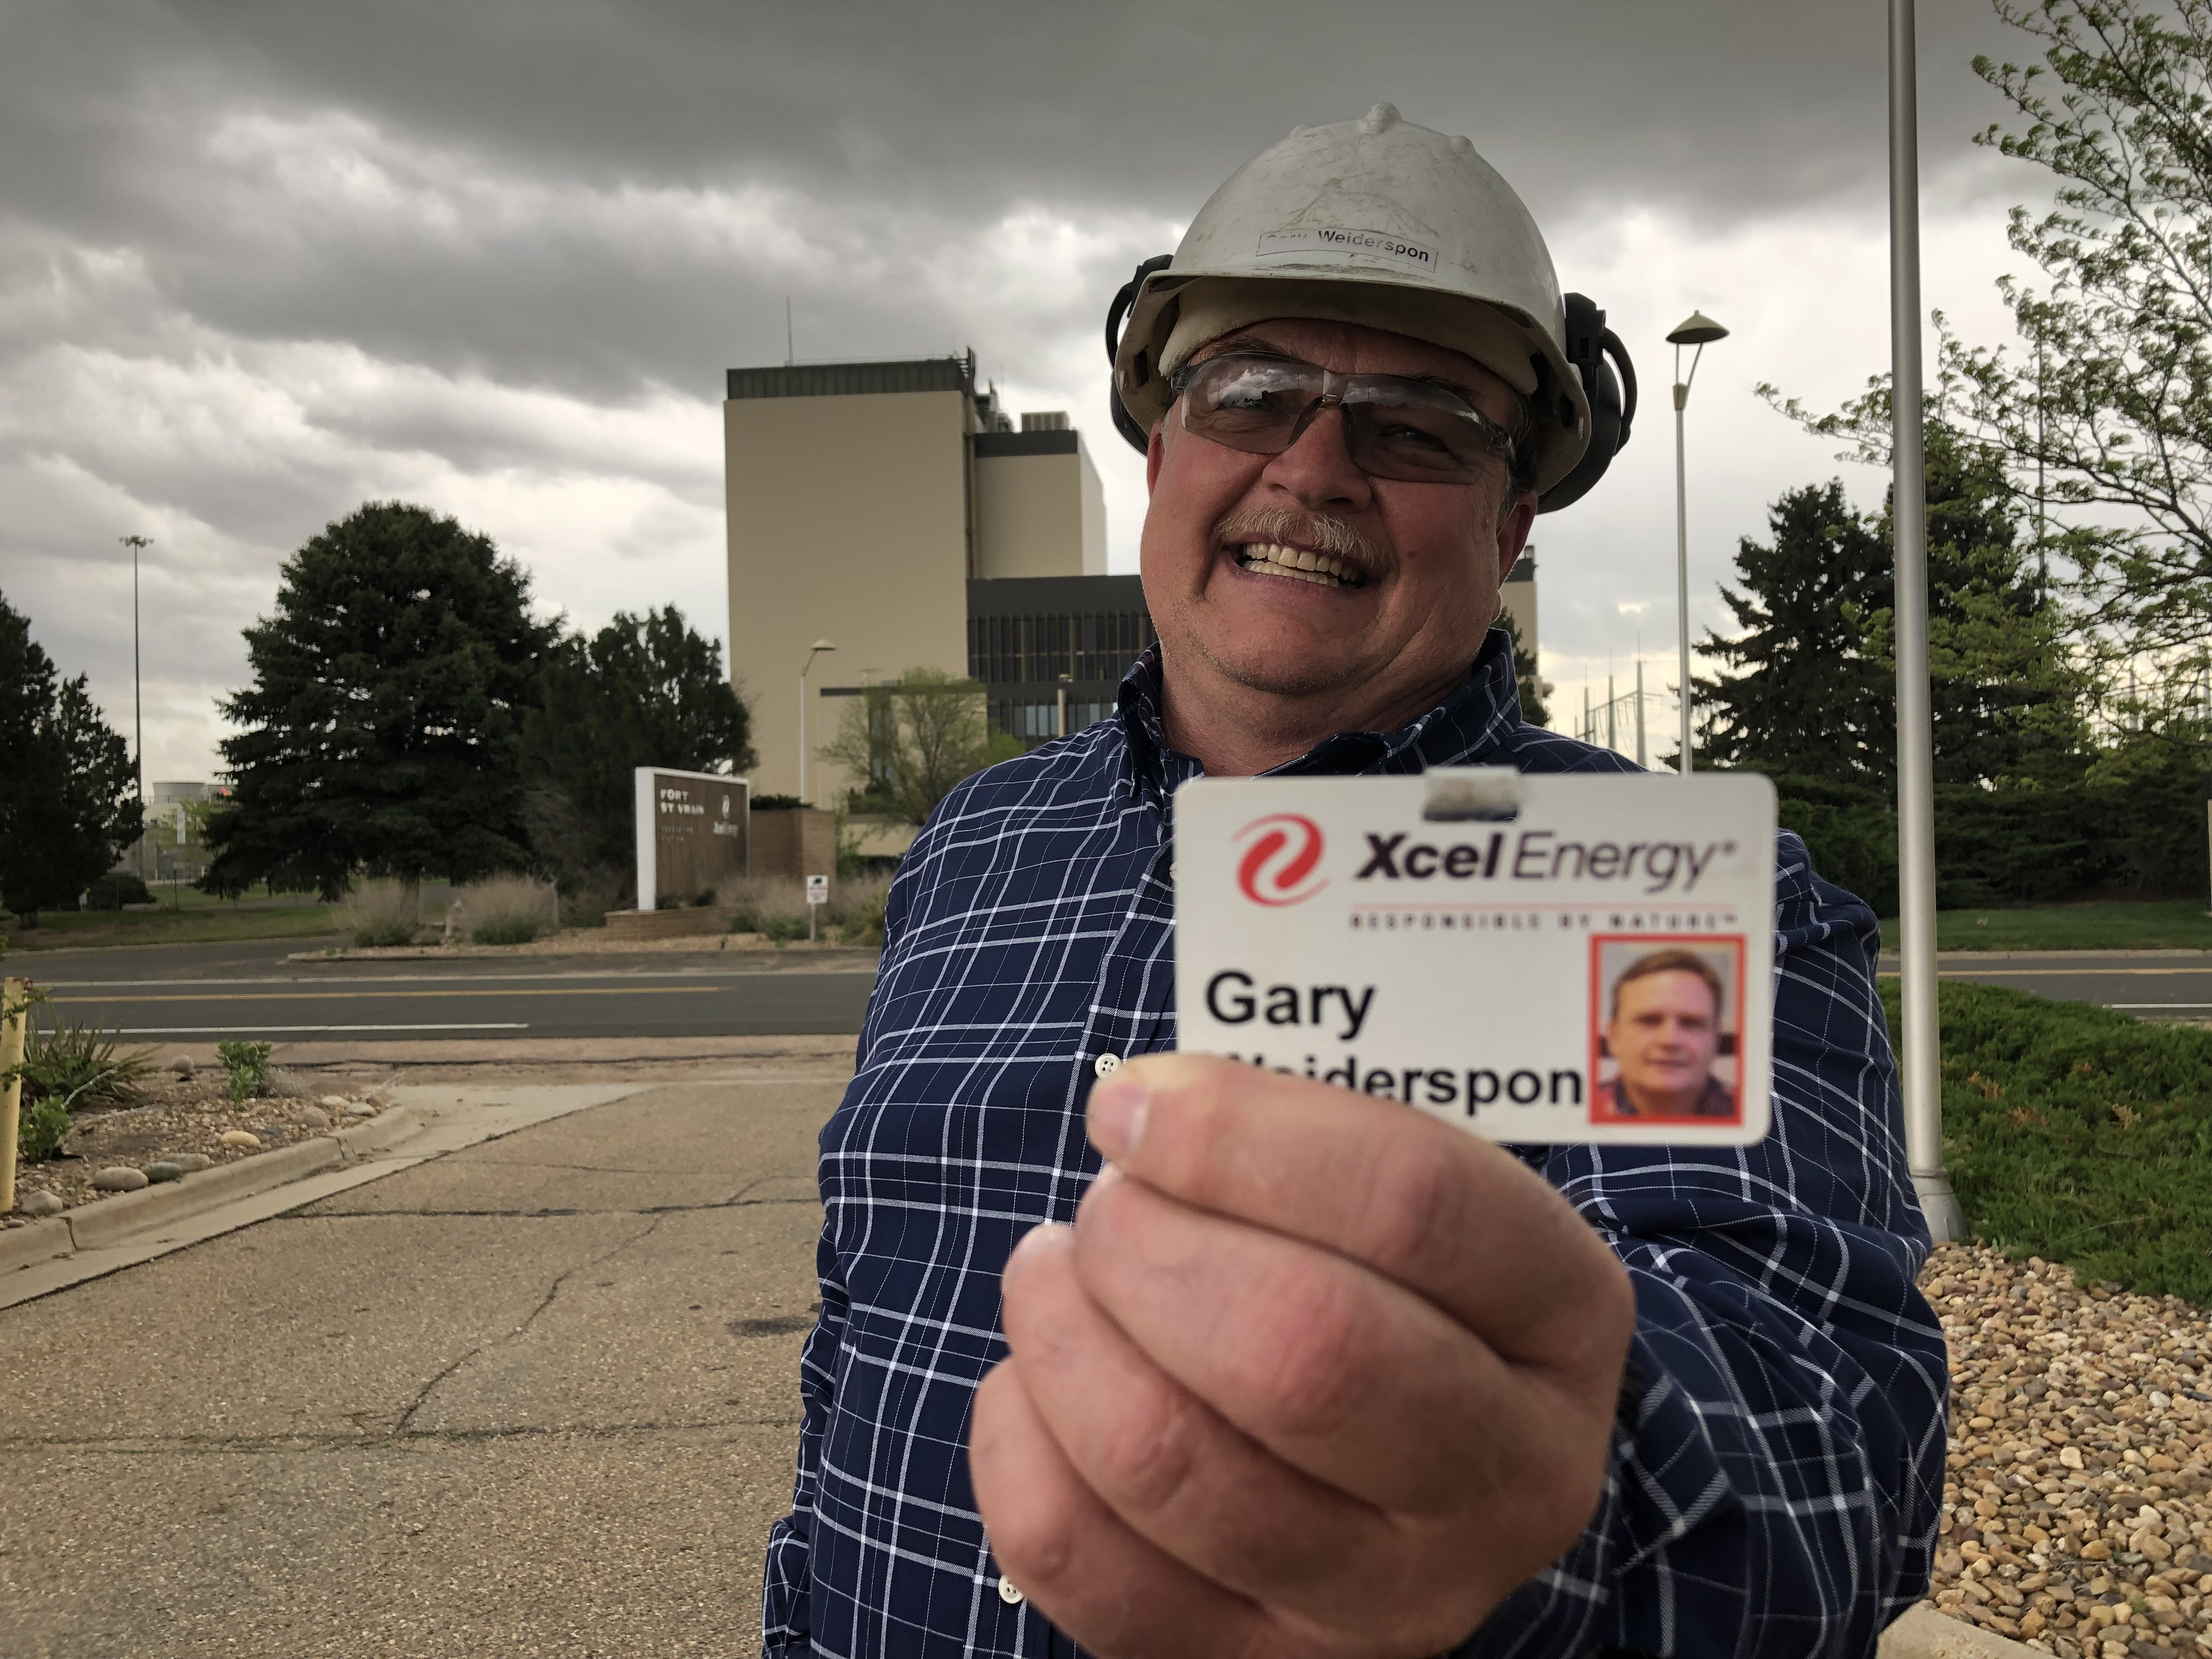 Gary Wiederspoon has worked at the former nuclear power plant, Fort St. Vrain since 1984. He shows off his name badge in front of the building in Platteville, Colo.